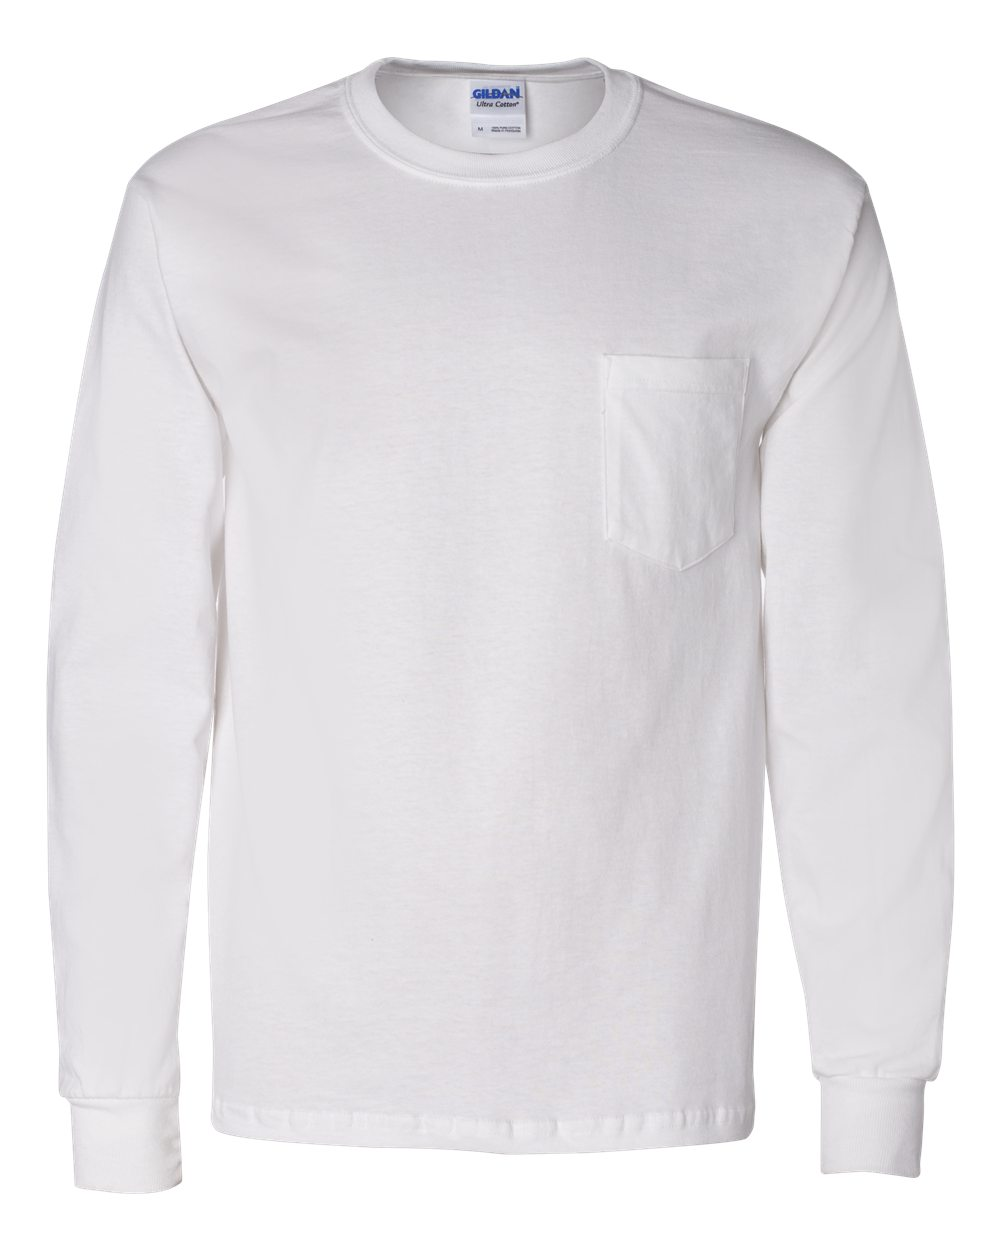 Ultrapress Custom Gildan Ultra Cotton Long Sleeve T Shirt With A